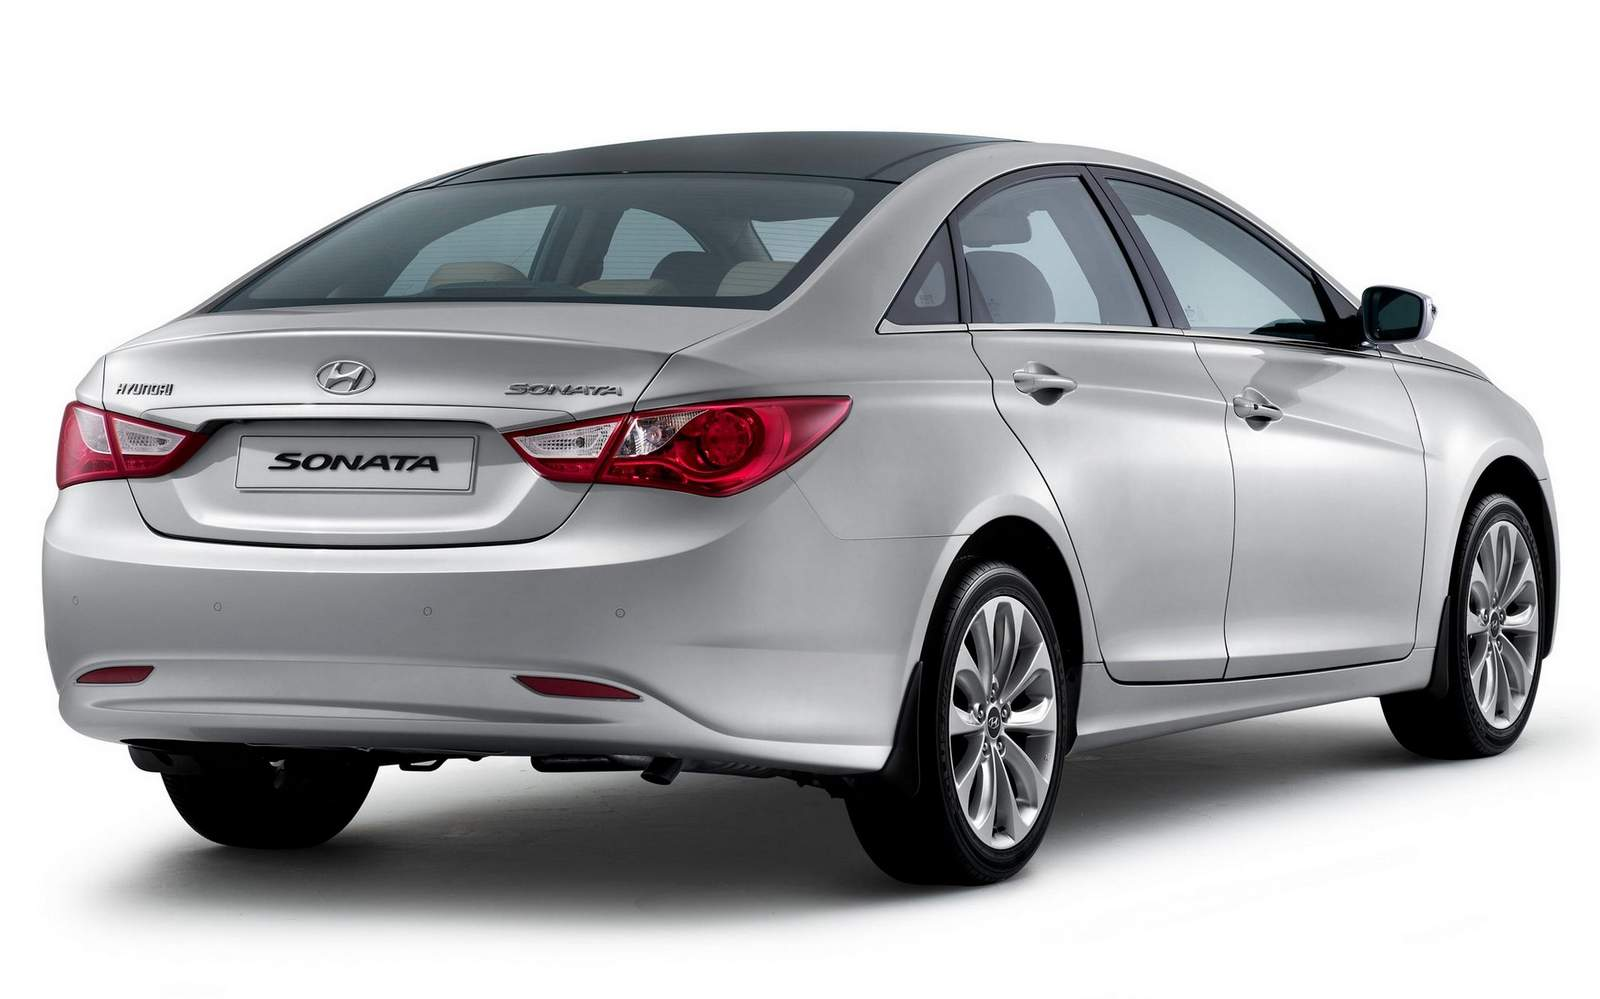 hyundai sonata 2011 a 2012 motor pode fundir recall car blog br. Black Bedroom Furniture Sets. Home Design Ideas